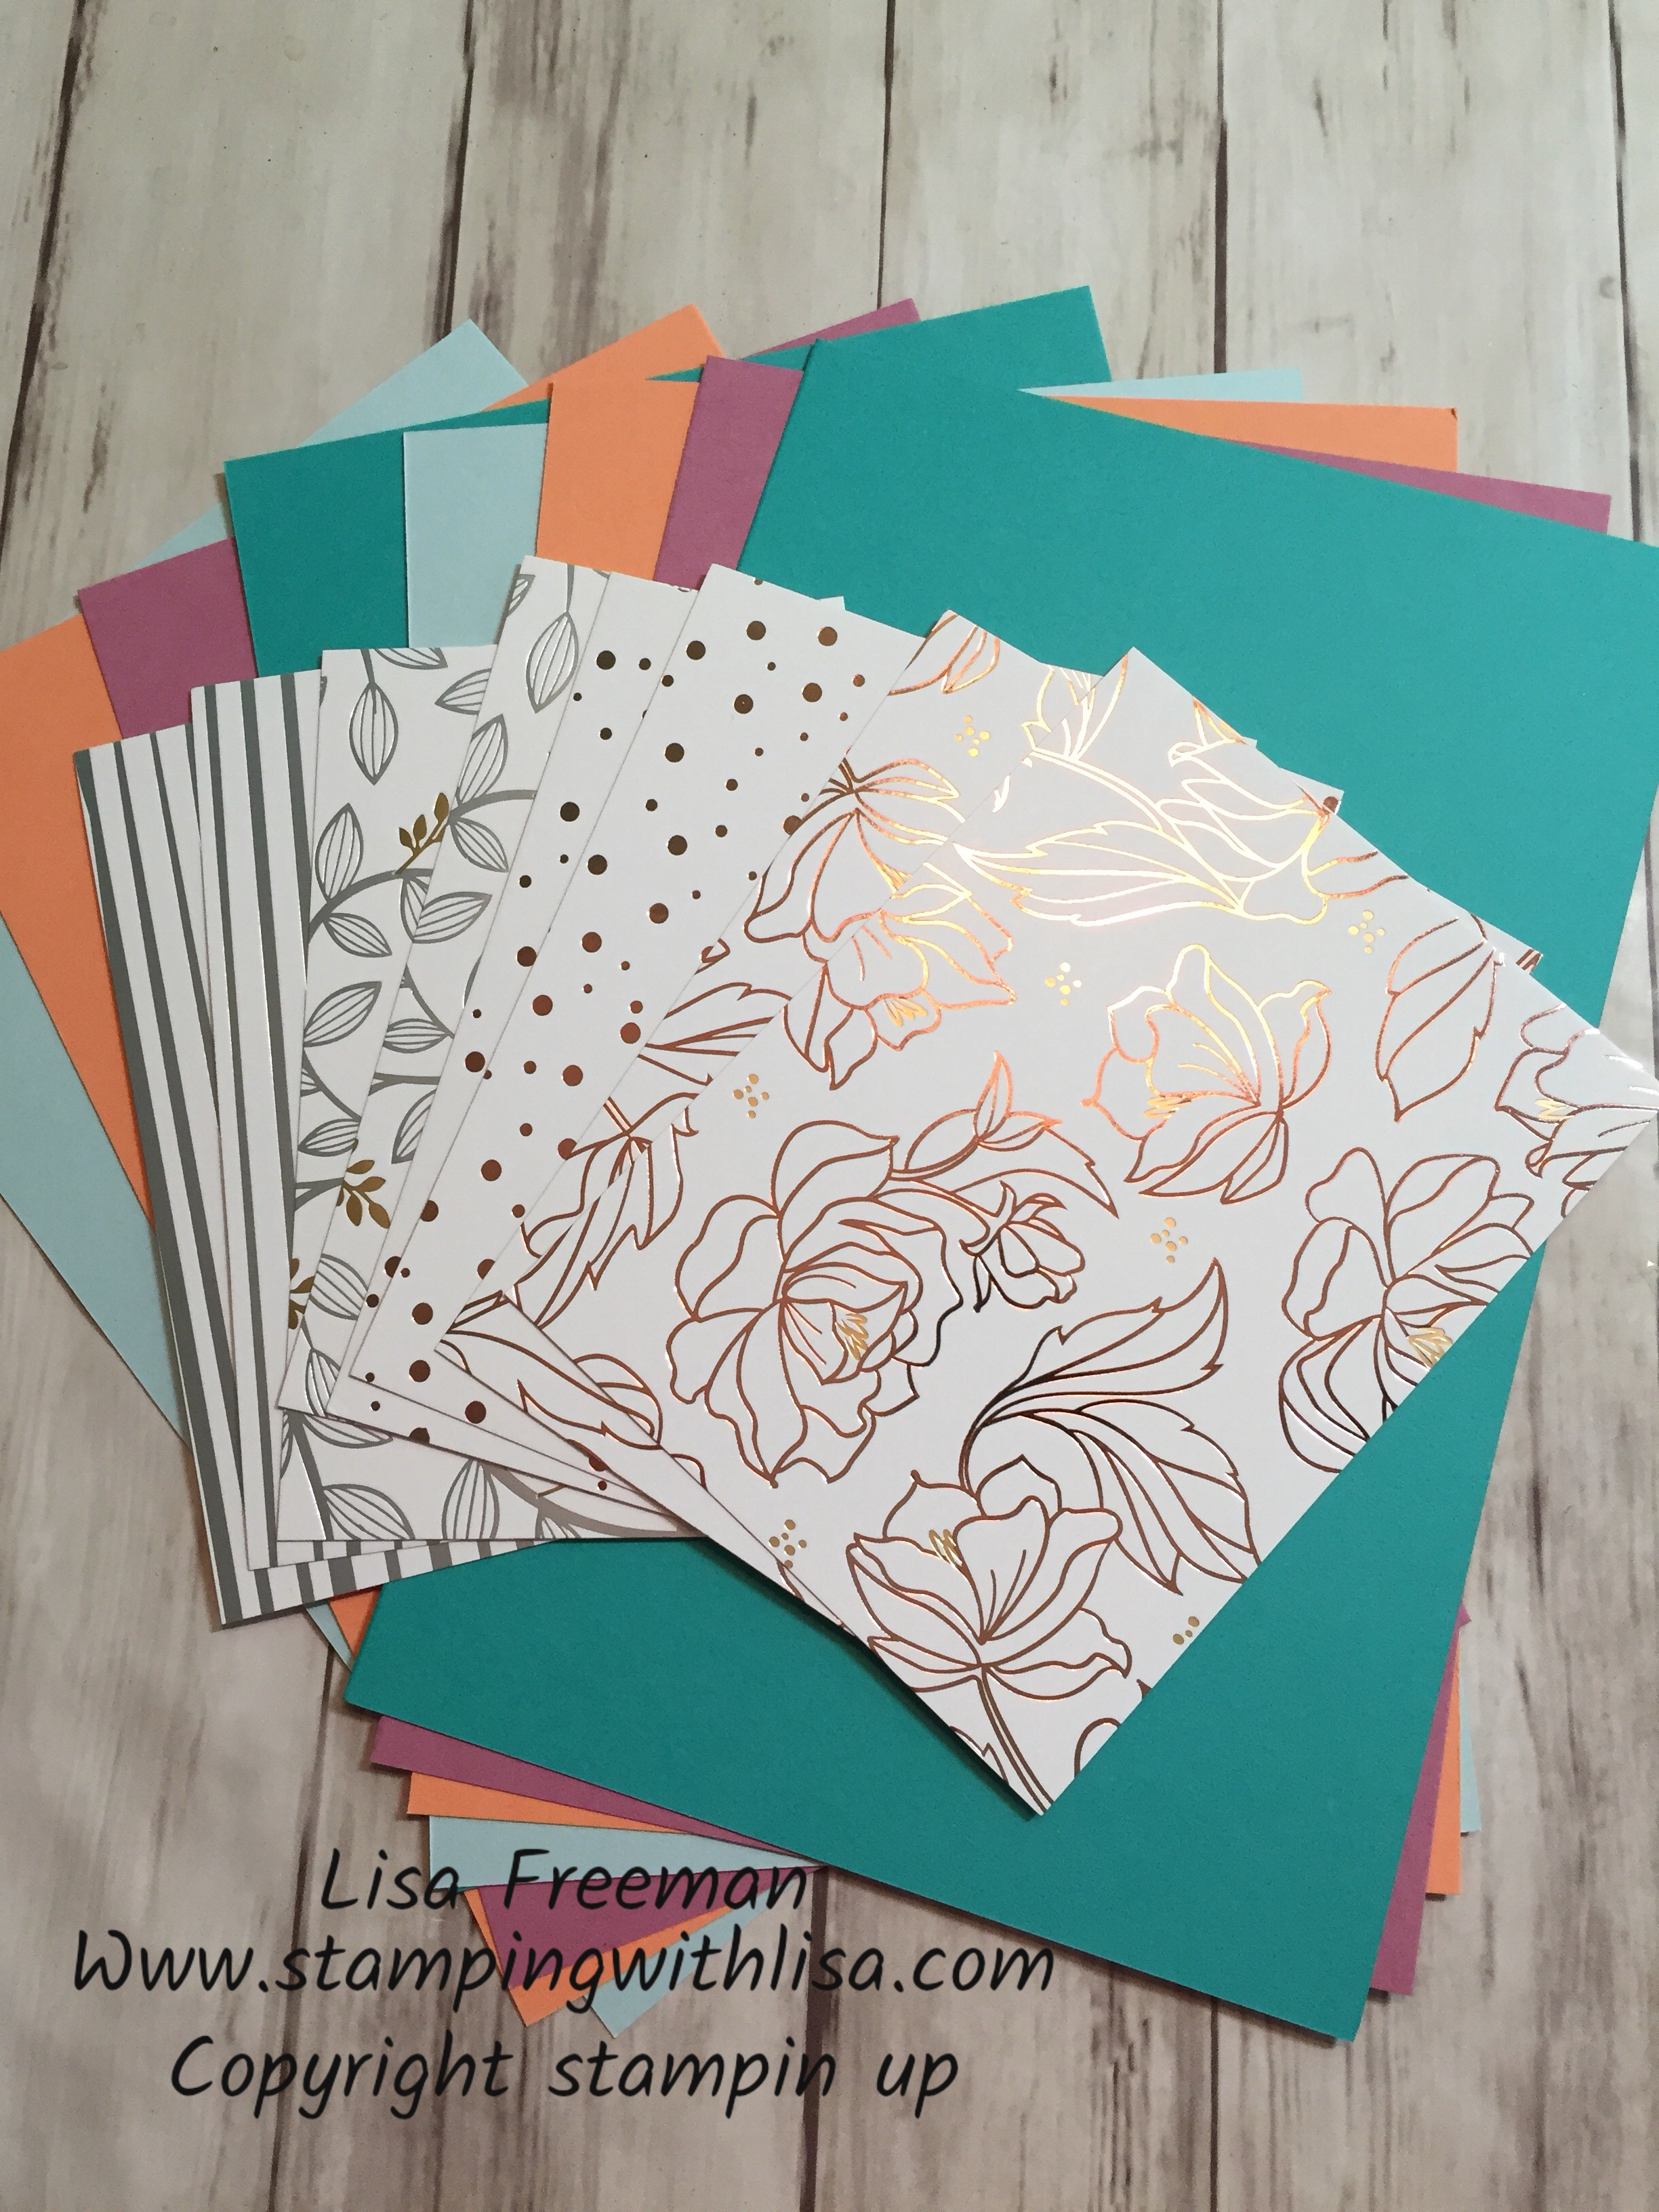 Ready For Some Easy Card Making?? Try Love It Chop It!